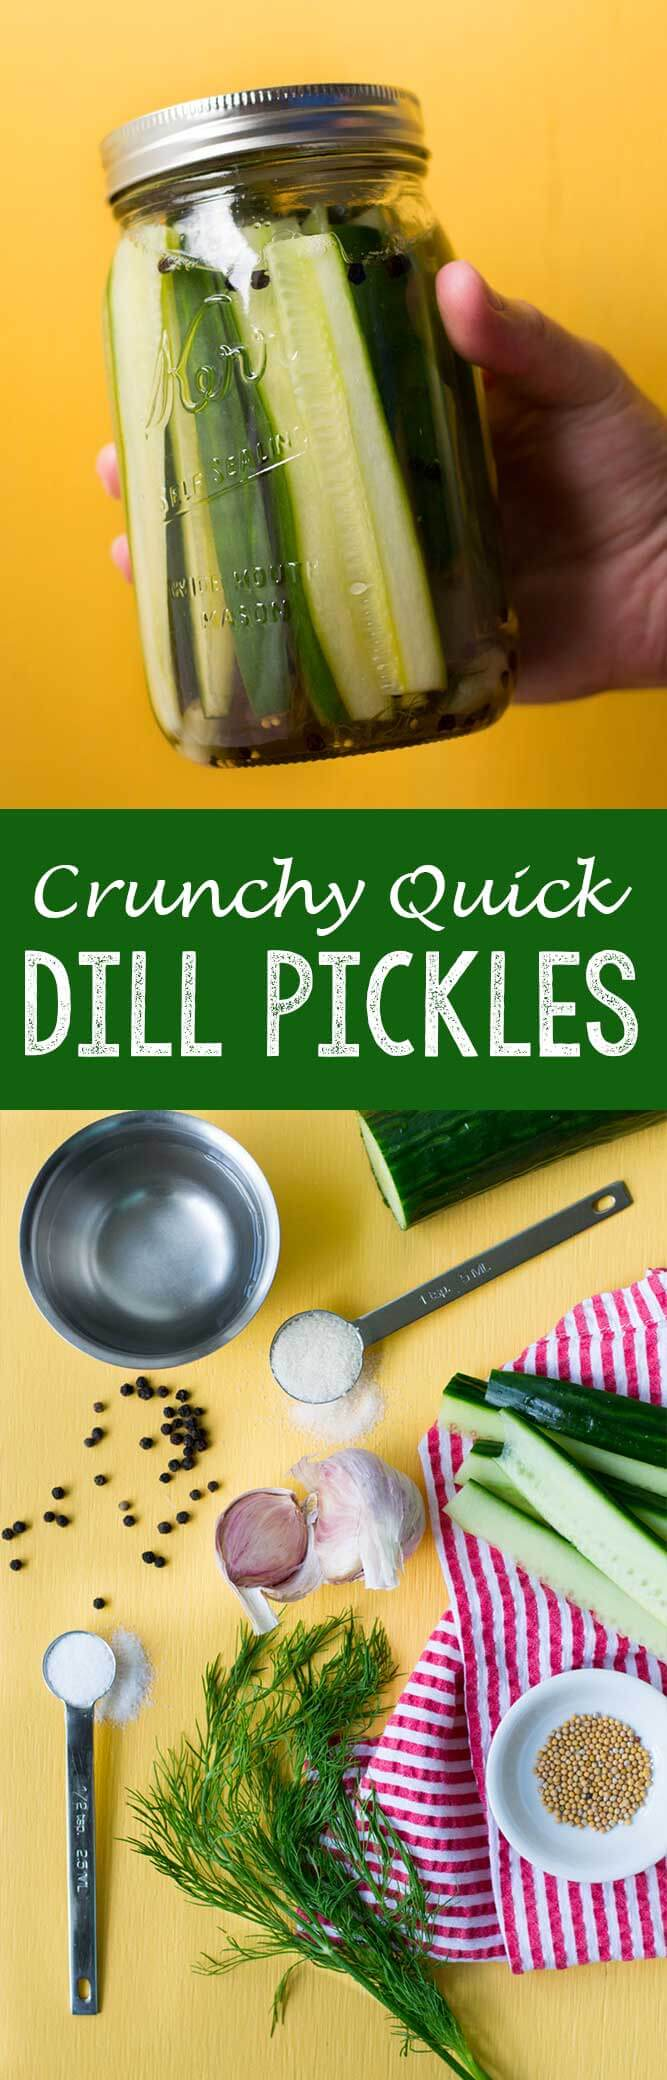 Crunchy quick dill pickles, the best refrigerator pickles you will ever eat!